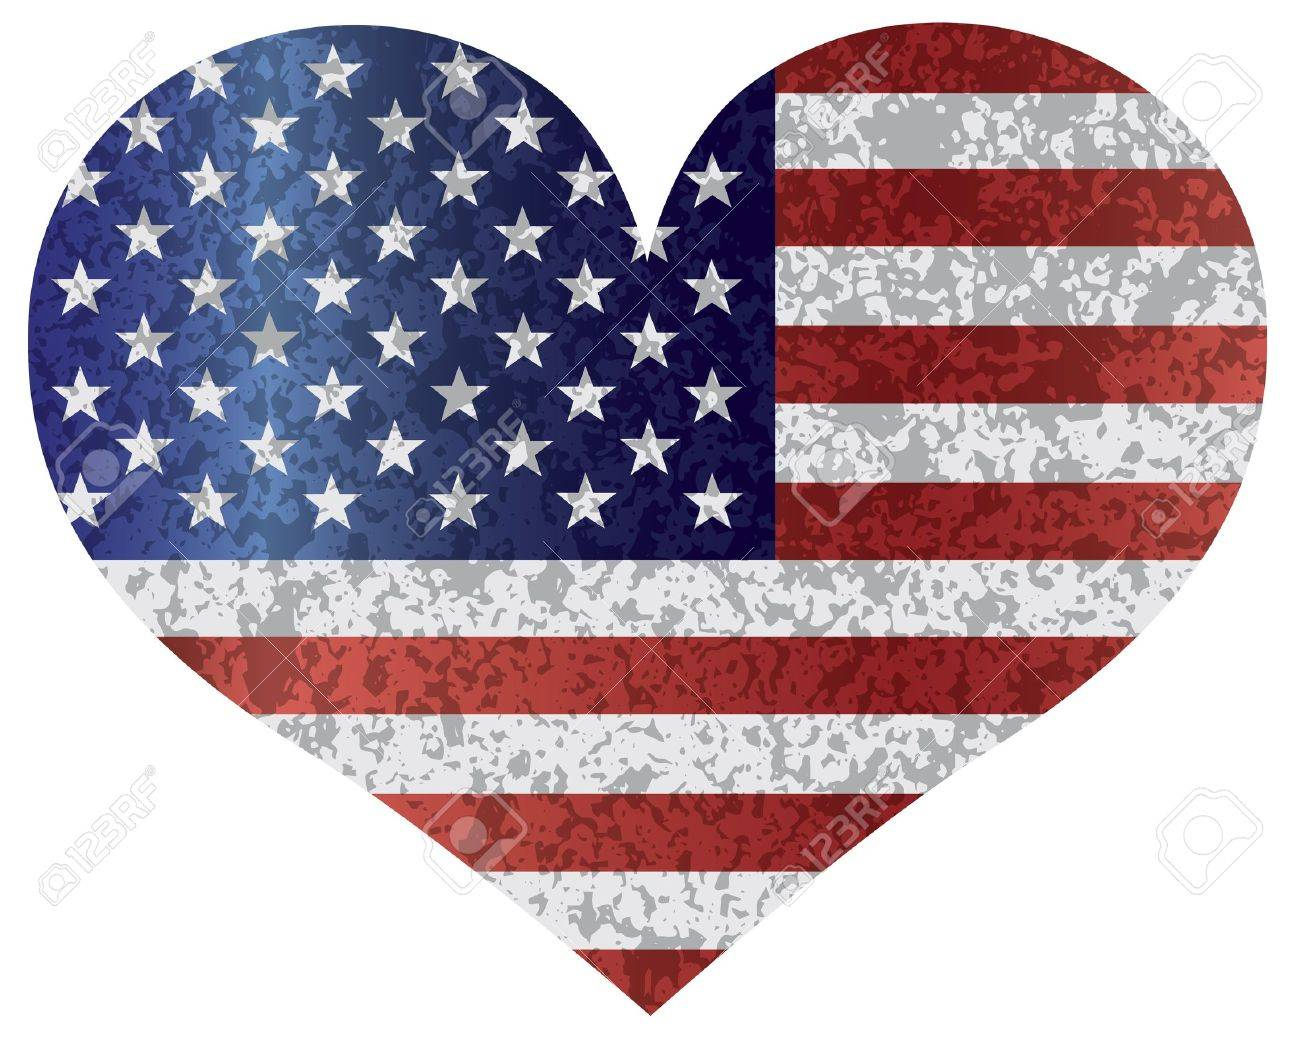 fourth of july usa flag in heart shape with texture illustration rh 123rf com Patriotic Heart Vector Food Heart Vector